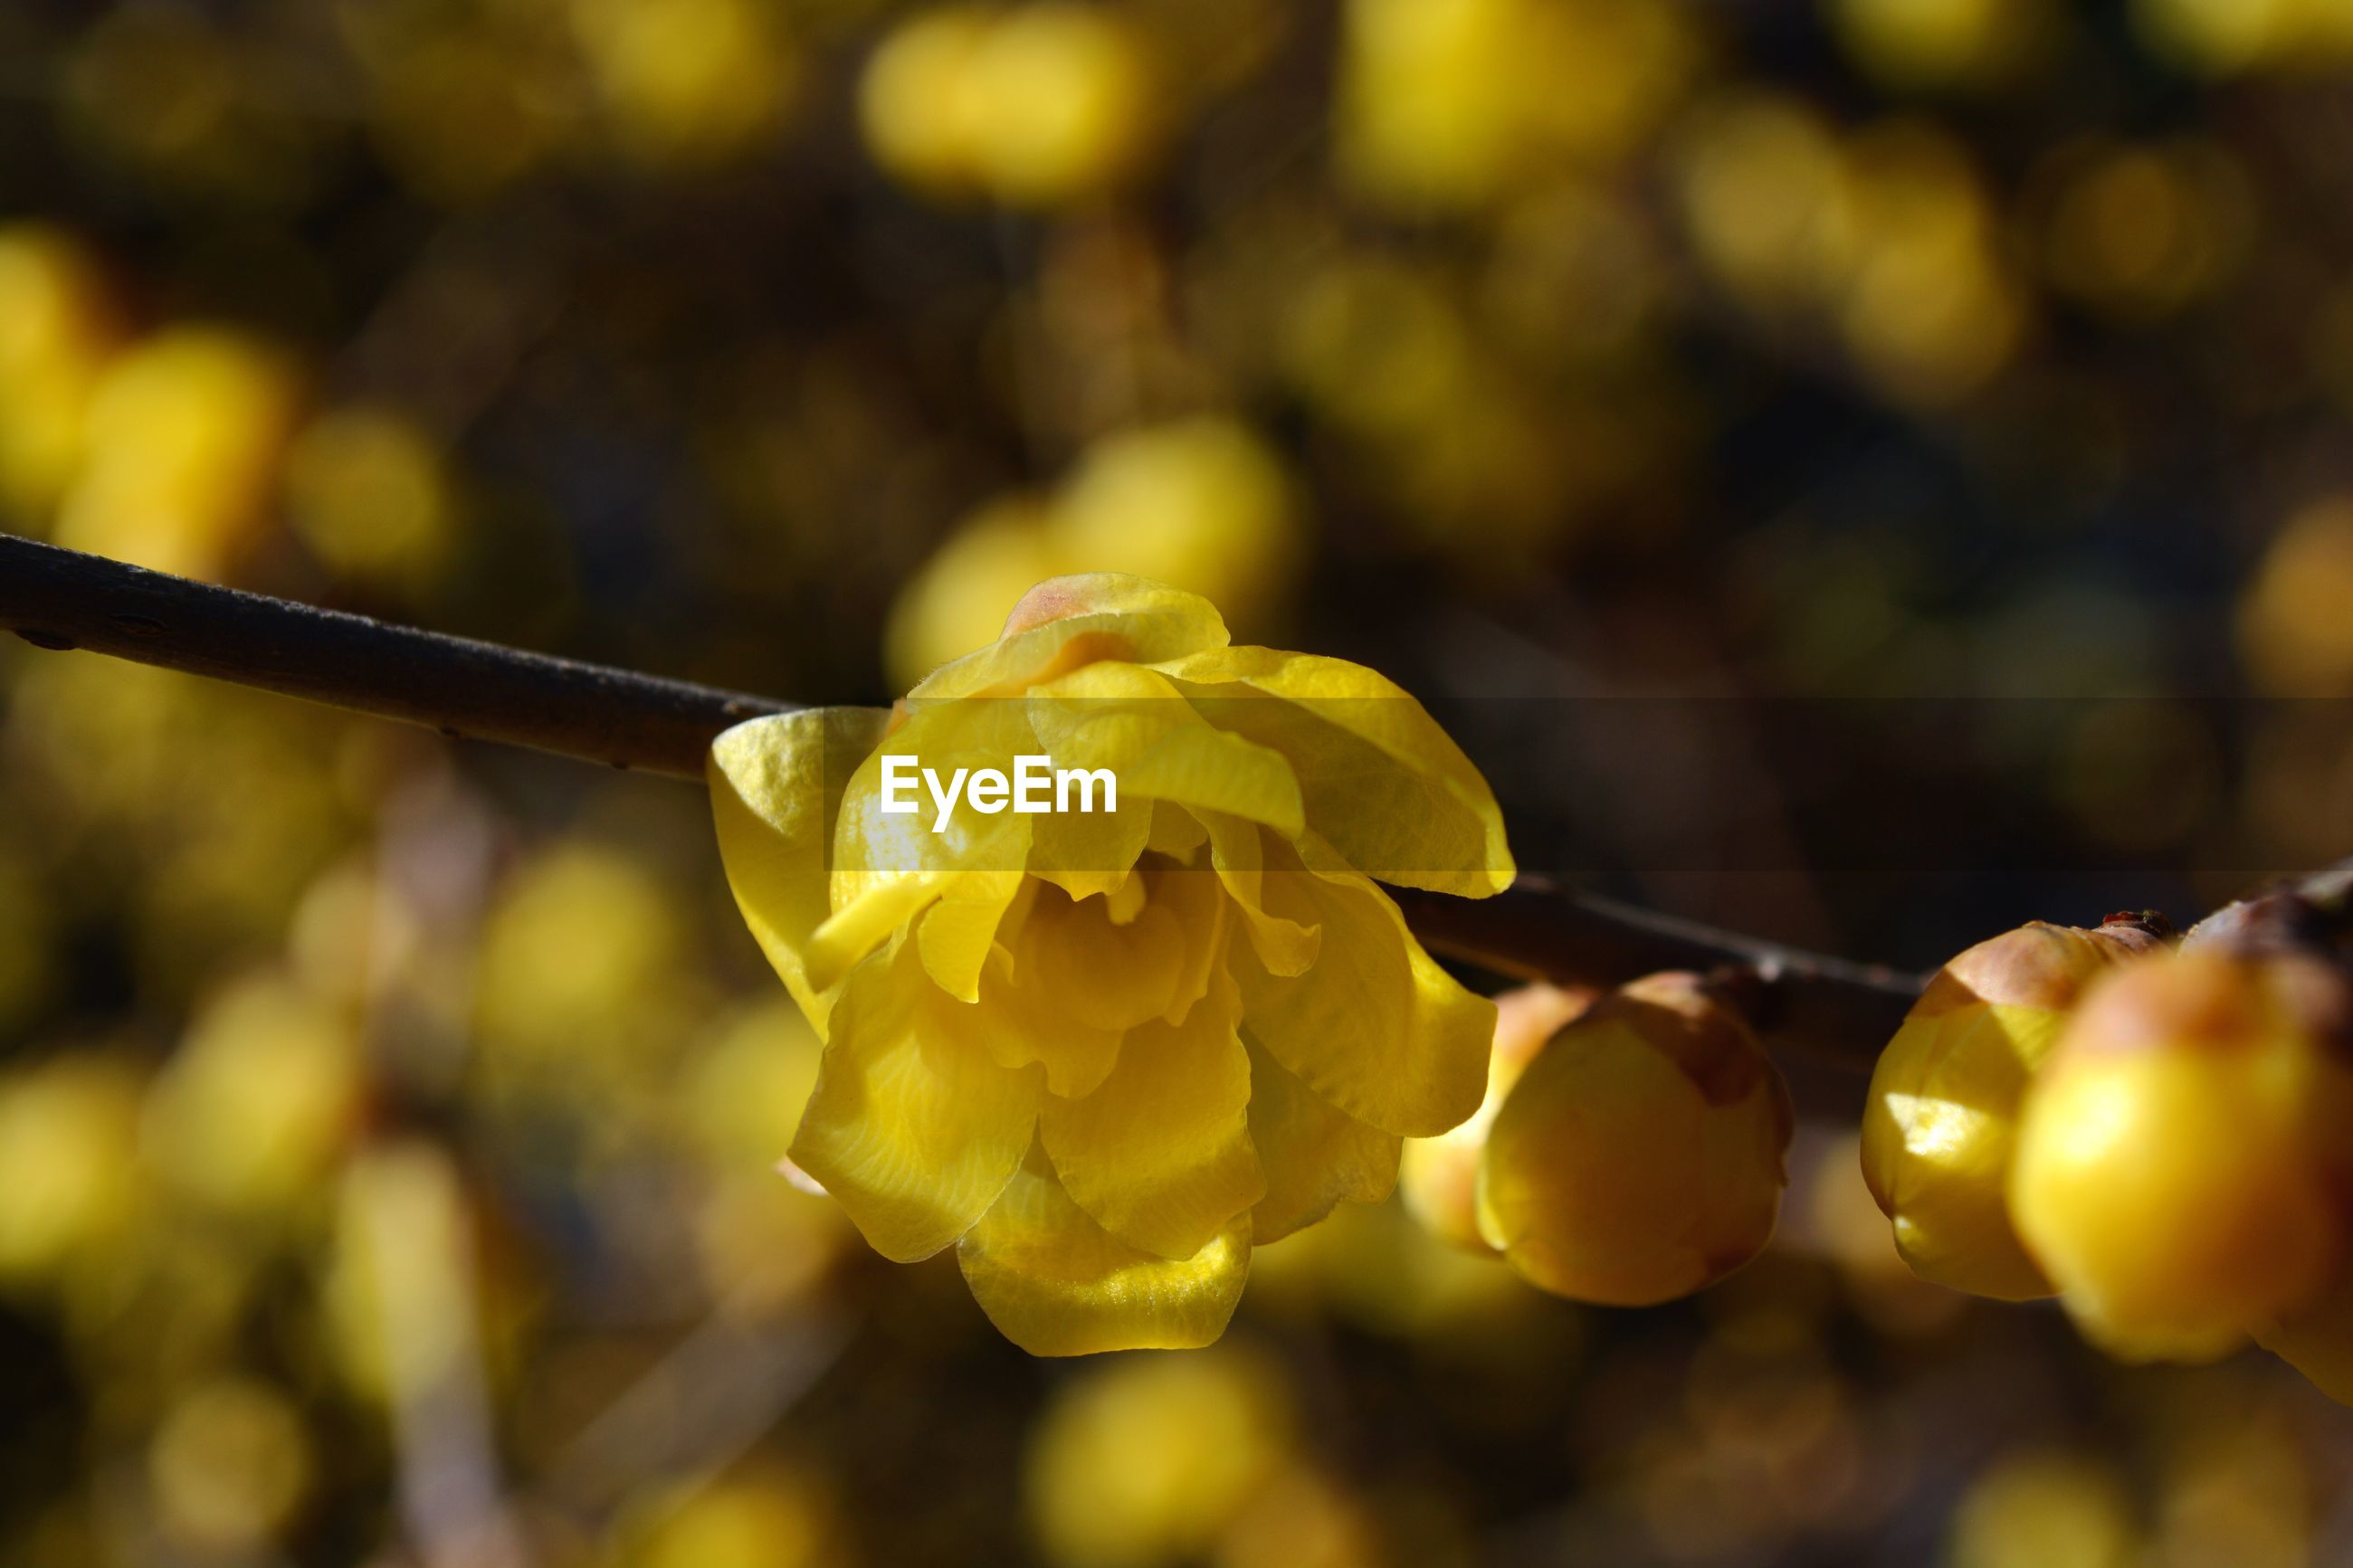 yellow, freshness, focus on foreground, close-up, flower, selective focus, hanging, food and drink, outdoors, day, no people, nature, fruit, fragility, food, growth, beauty in nature, healthy eating, petal, season